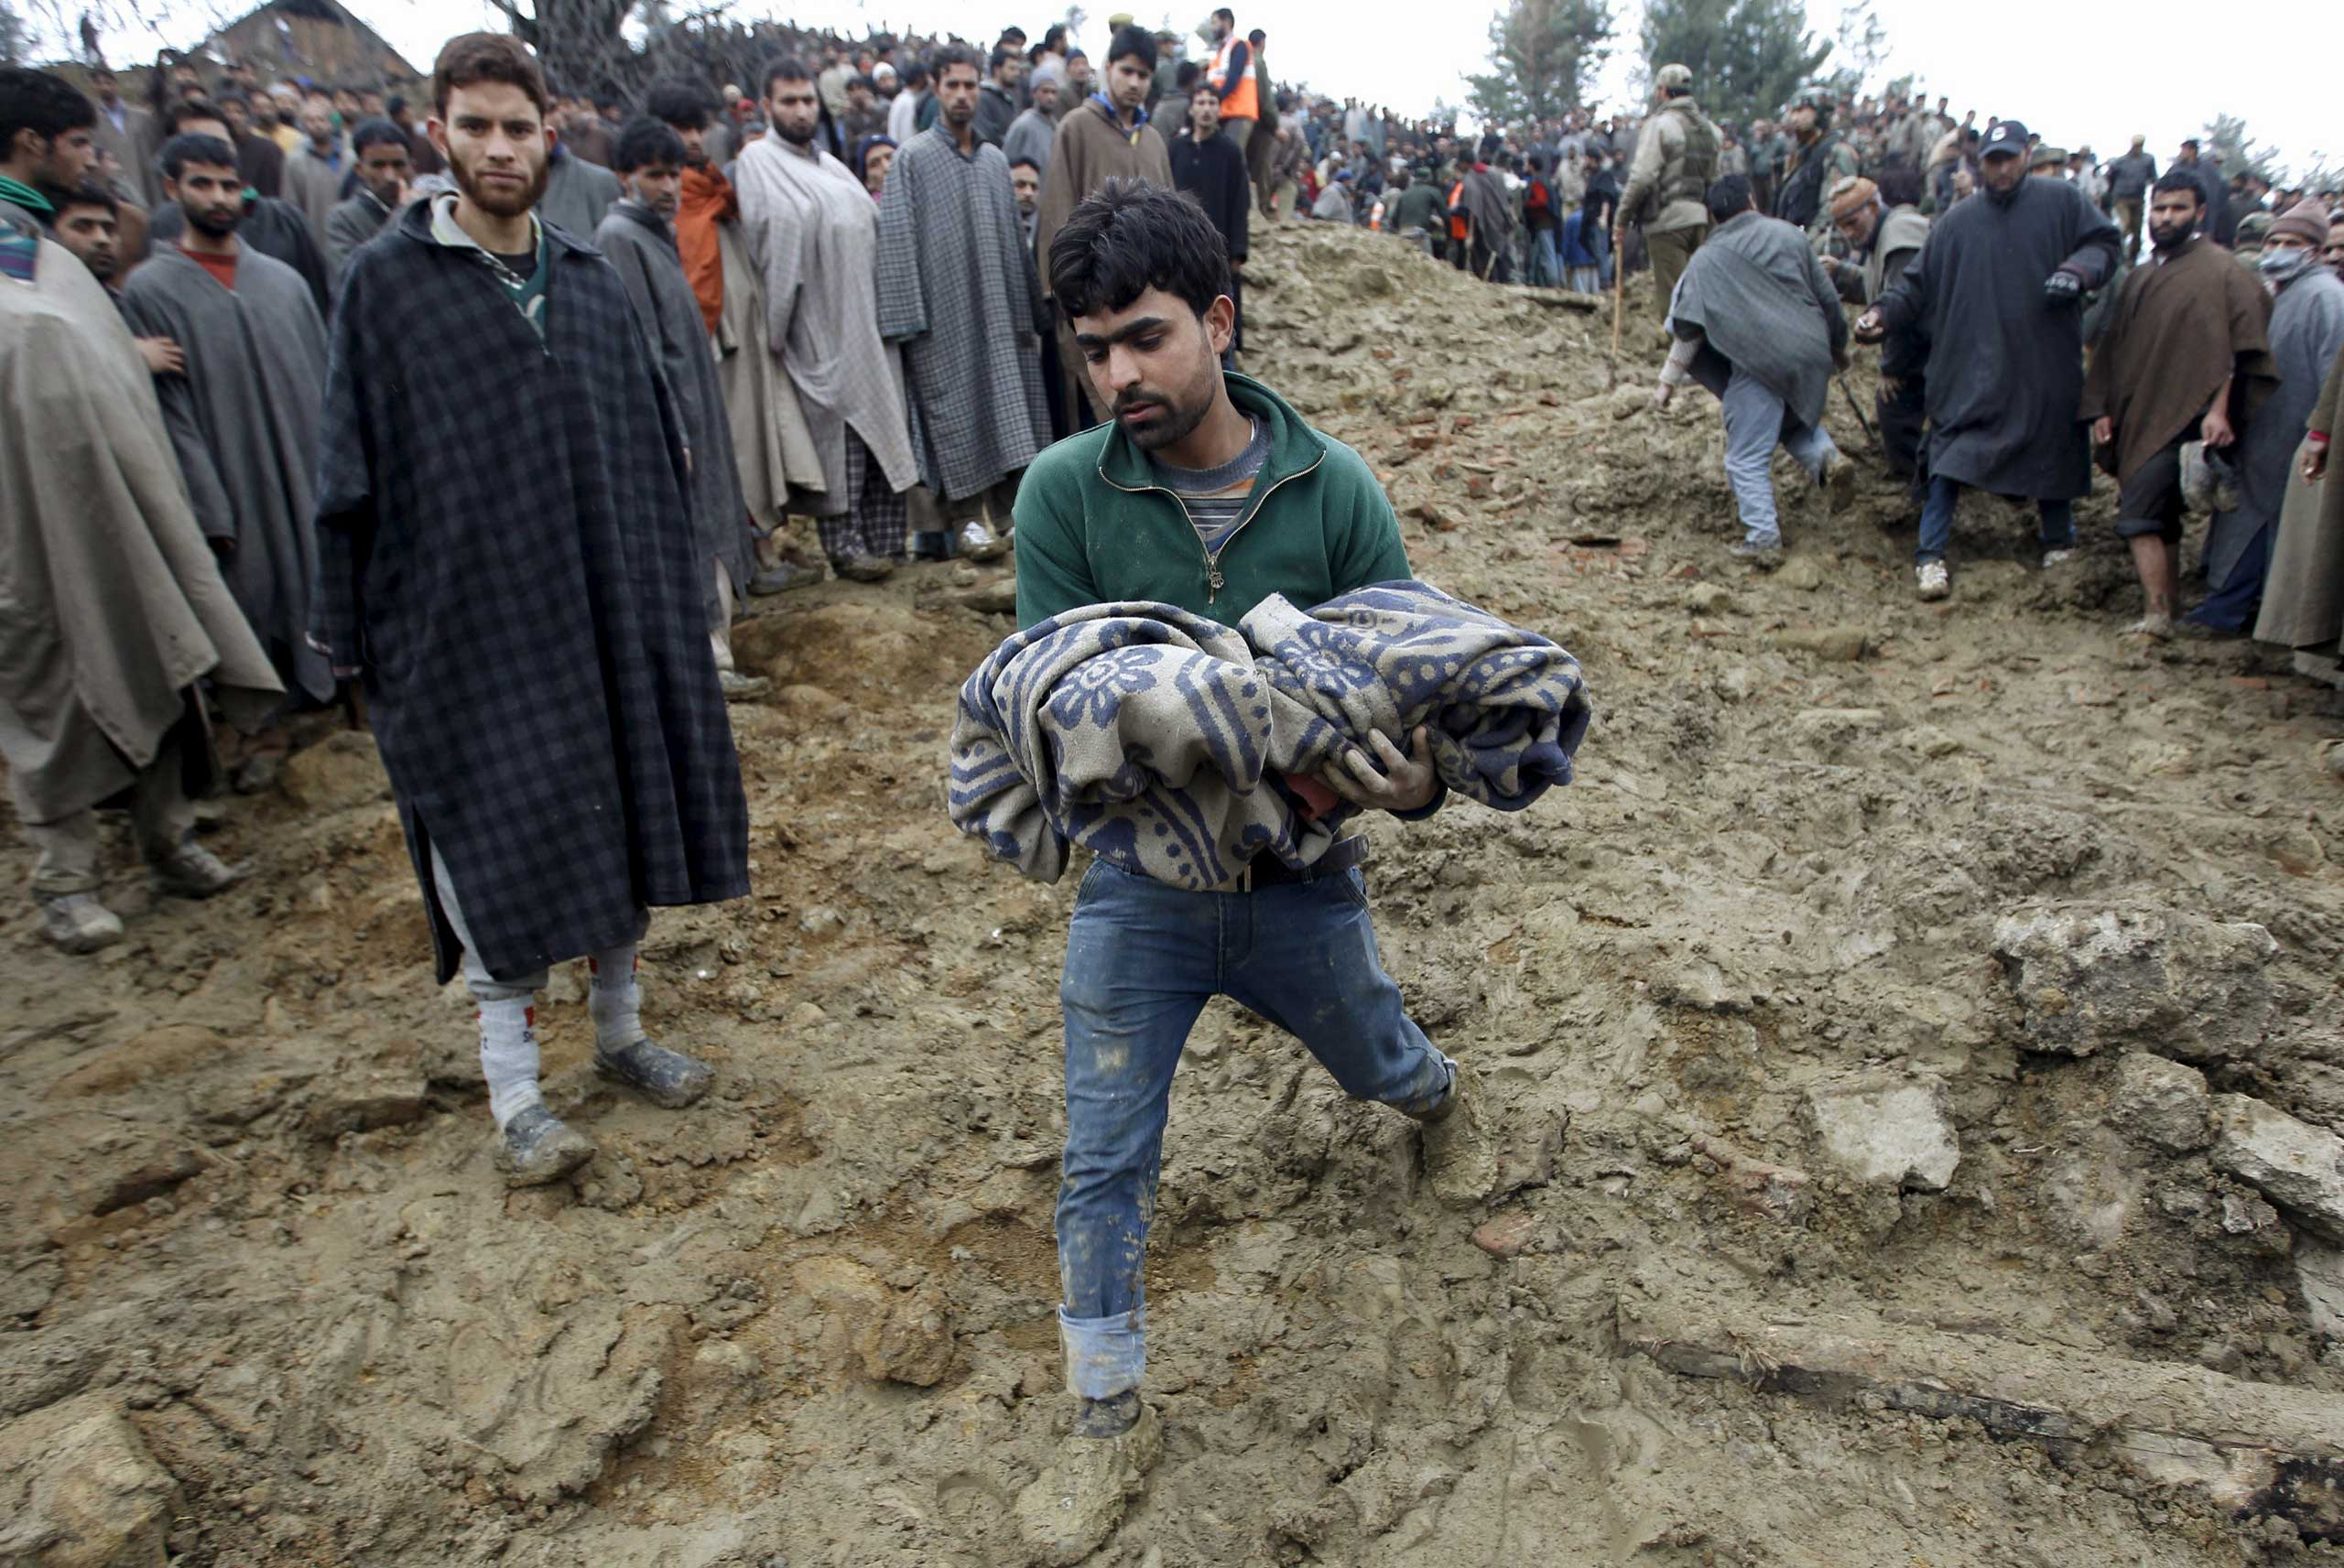 A Kashmiri man in the village of Laden carries the body of a child after it was pulled out from the rubble after a hillside collapsed onto a house on March 30, 2015.